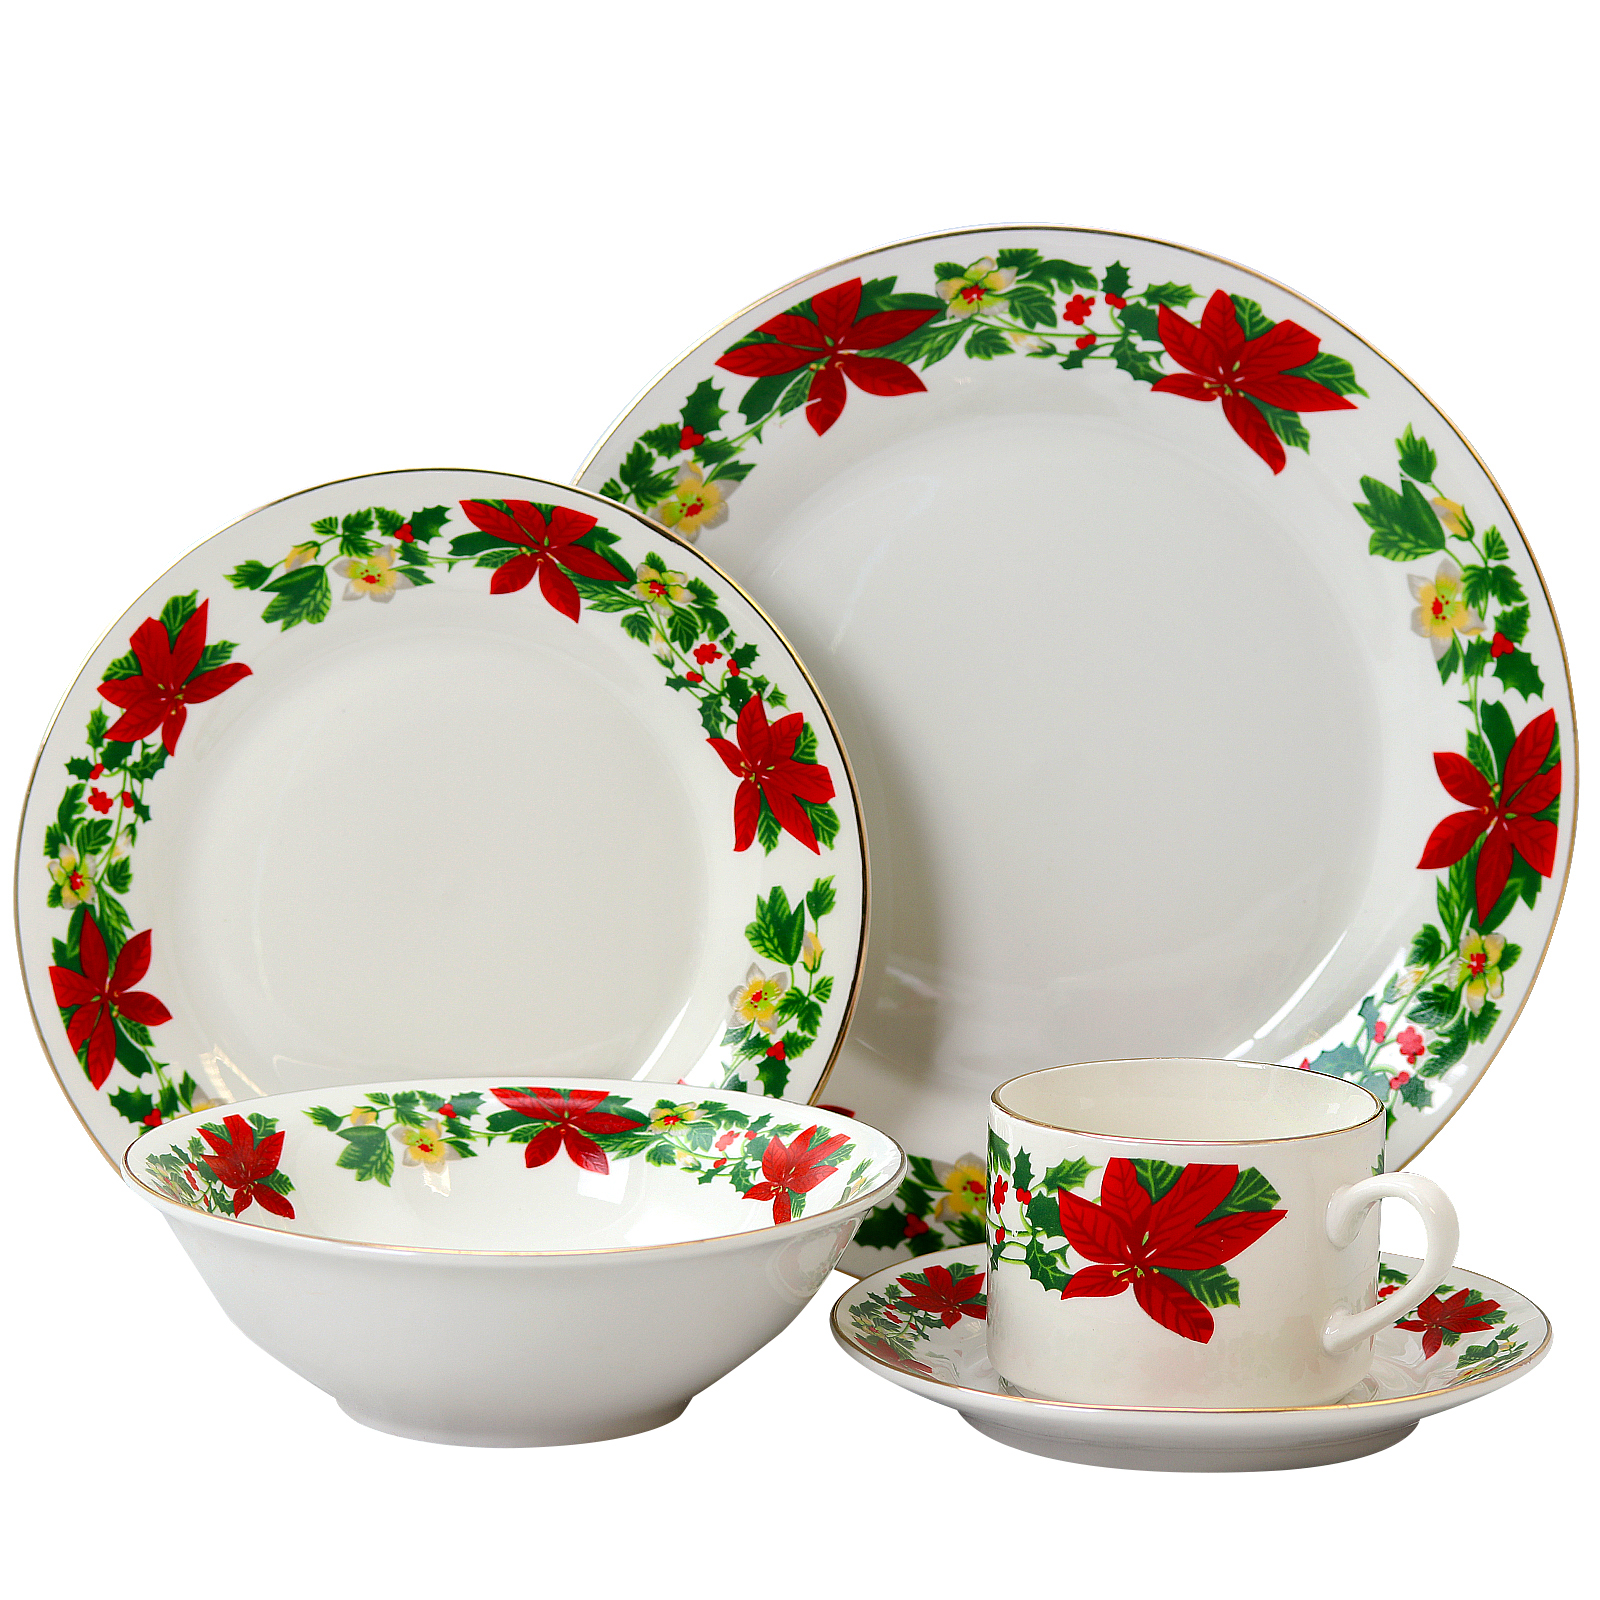 Poinsettia Holiday 20 pc Dinnerware Set - Rim Decorated - Fine Ceramic  sc 1 st  Walmart & Poinsettia Holiday 20 pc Dinnerware Set - Rim Decorated - Fine ...